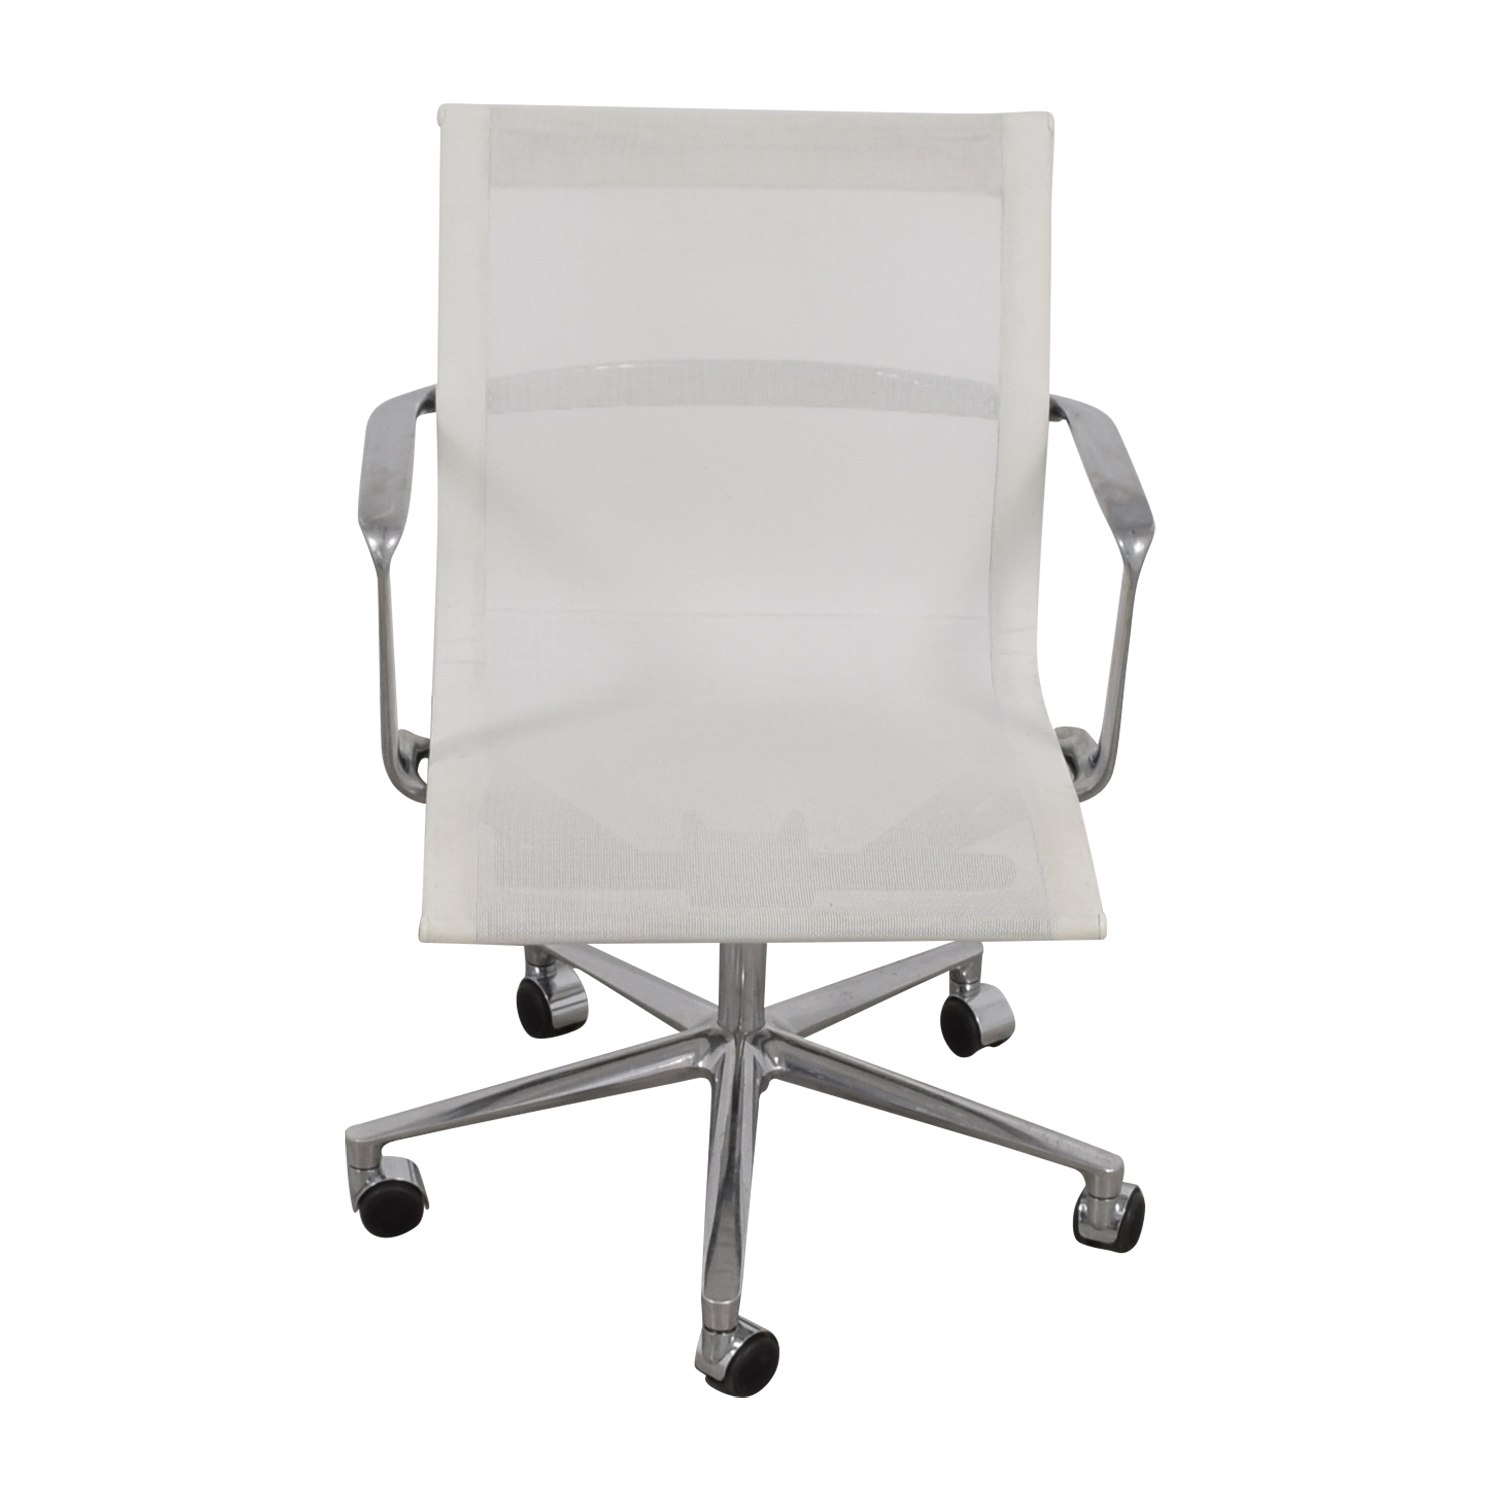 International Catsana Furniture International Catsana Furniture Una White Mesh Chair coupon